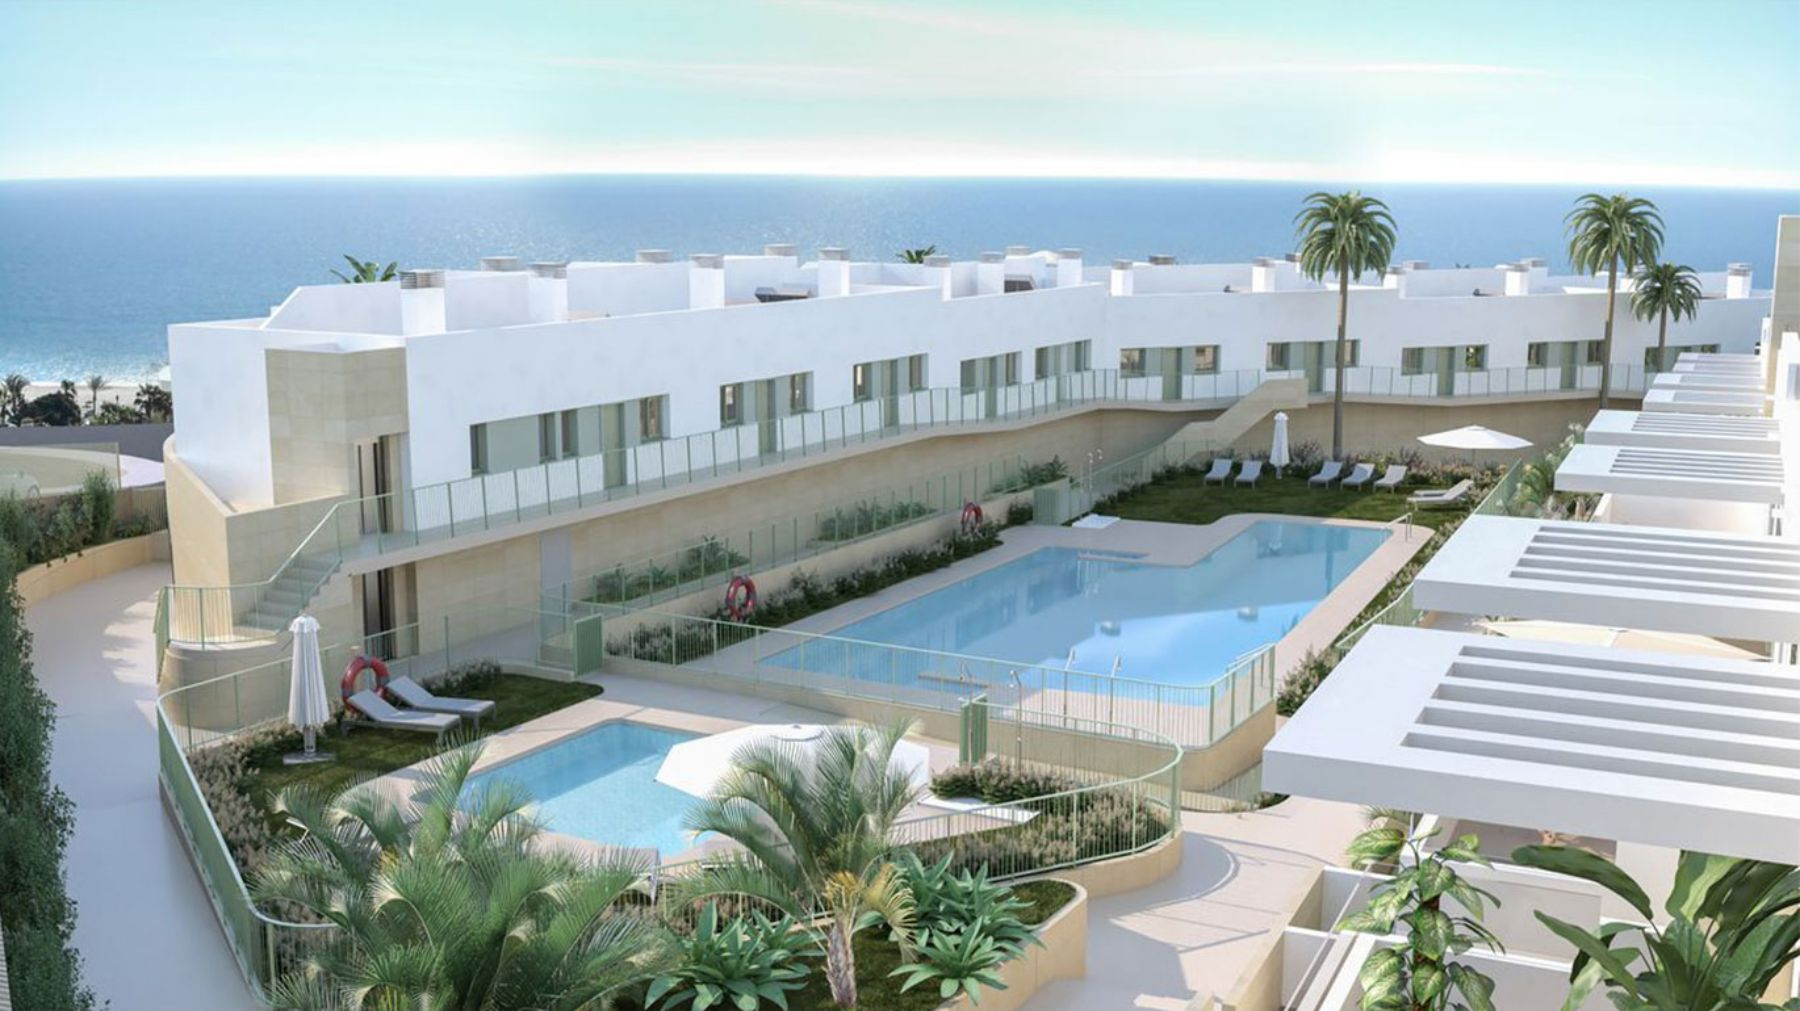 2 And 3 Bedrooms apartment by Mojacar Beach